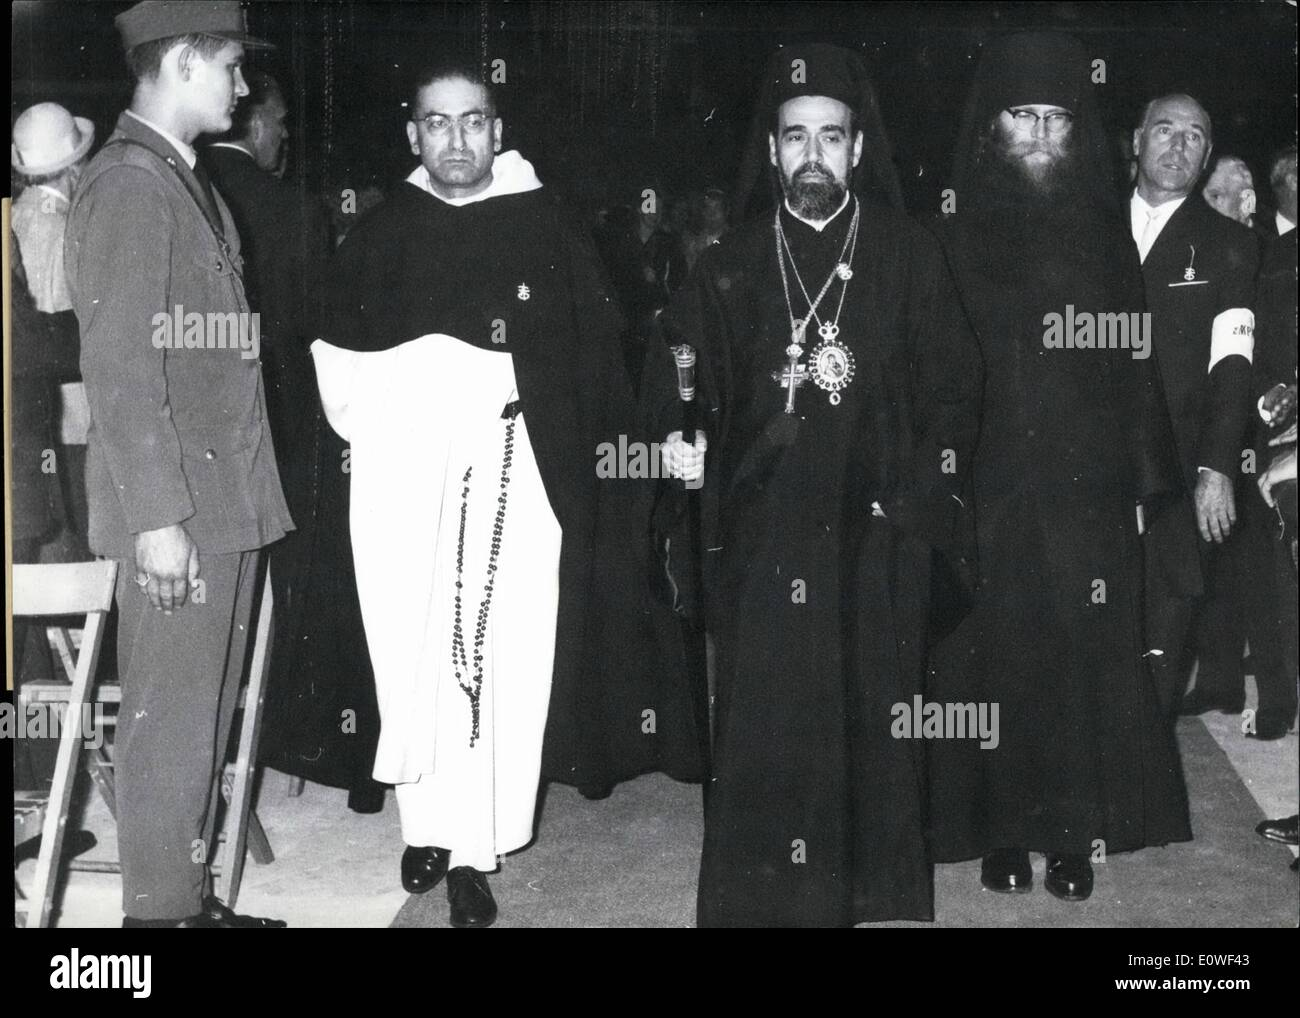 Aug. 08, 1962 - The 79th German Catholic Day; was opened with afestive arrangement by the tract of land for exhibition into Hannover., 20,000 peoples was witness of this hour of rest. Under that was 50 Bishops, cardinals and abbots from the inland and foreign country, diplomats and members of the German confederacy government. Photo Shows left the Erzbishop of Jerusalem, Abou Saada and right the Erzbishop of Damaskus, Tavil. - Stock Image